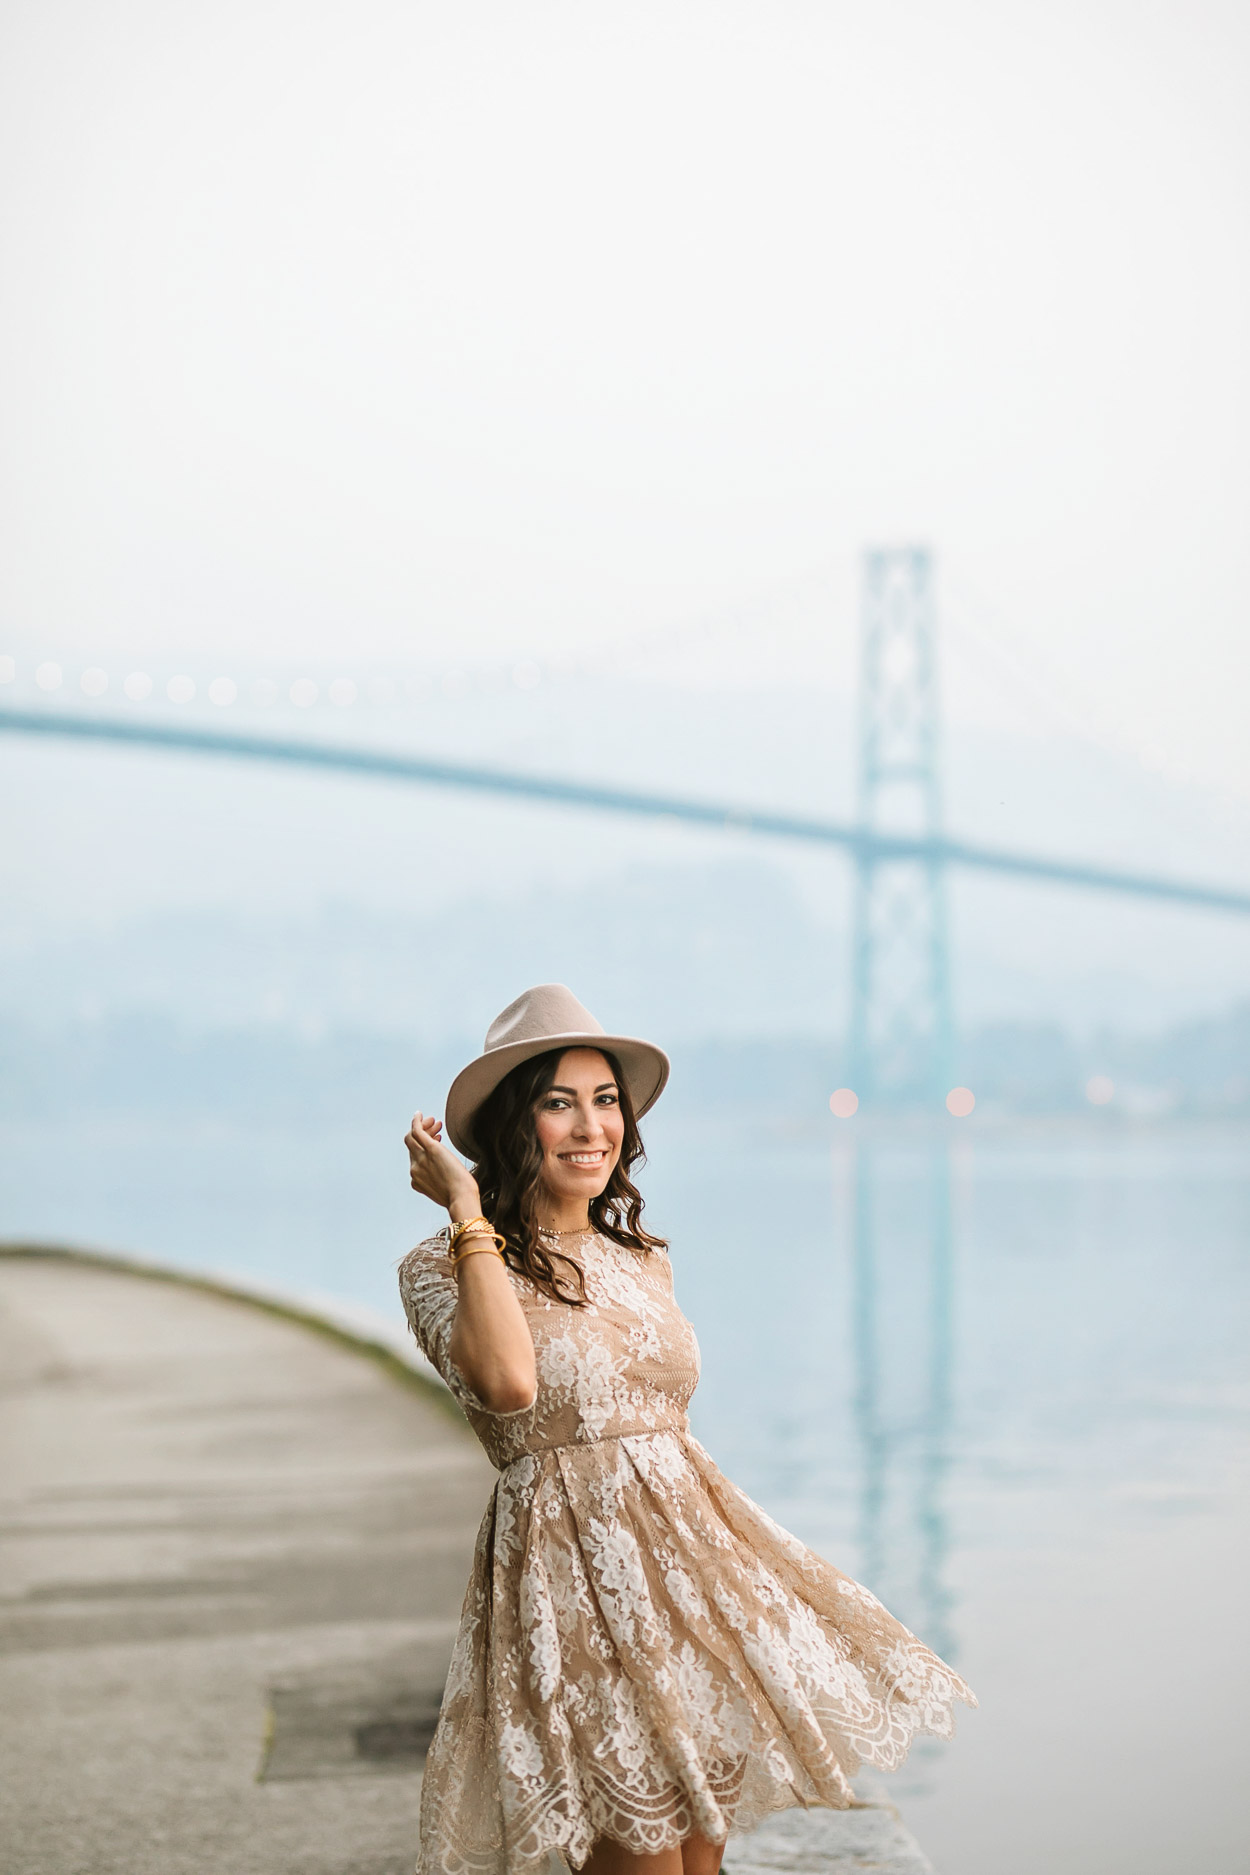 A Glam Lifestyle blogger picks the top 7 things to do in Vancouver